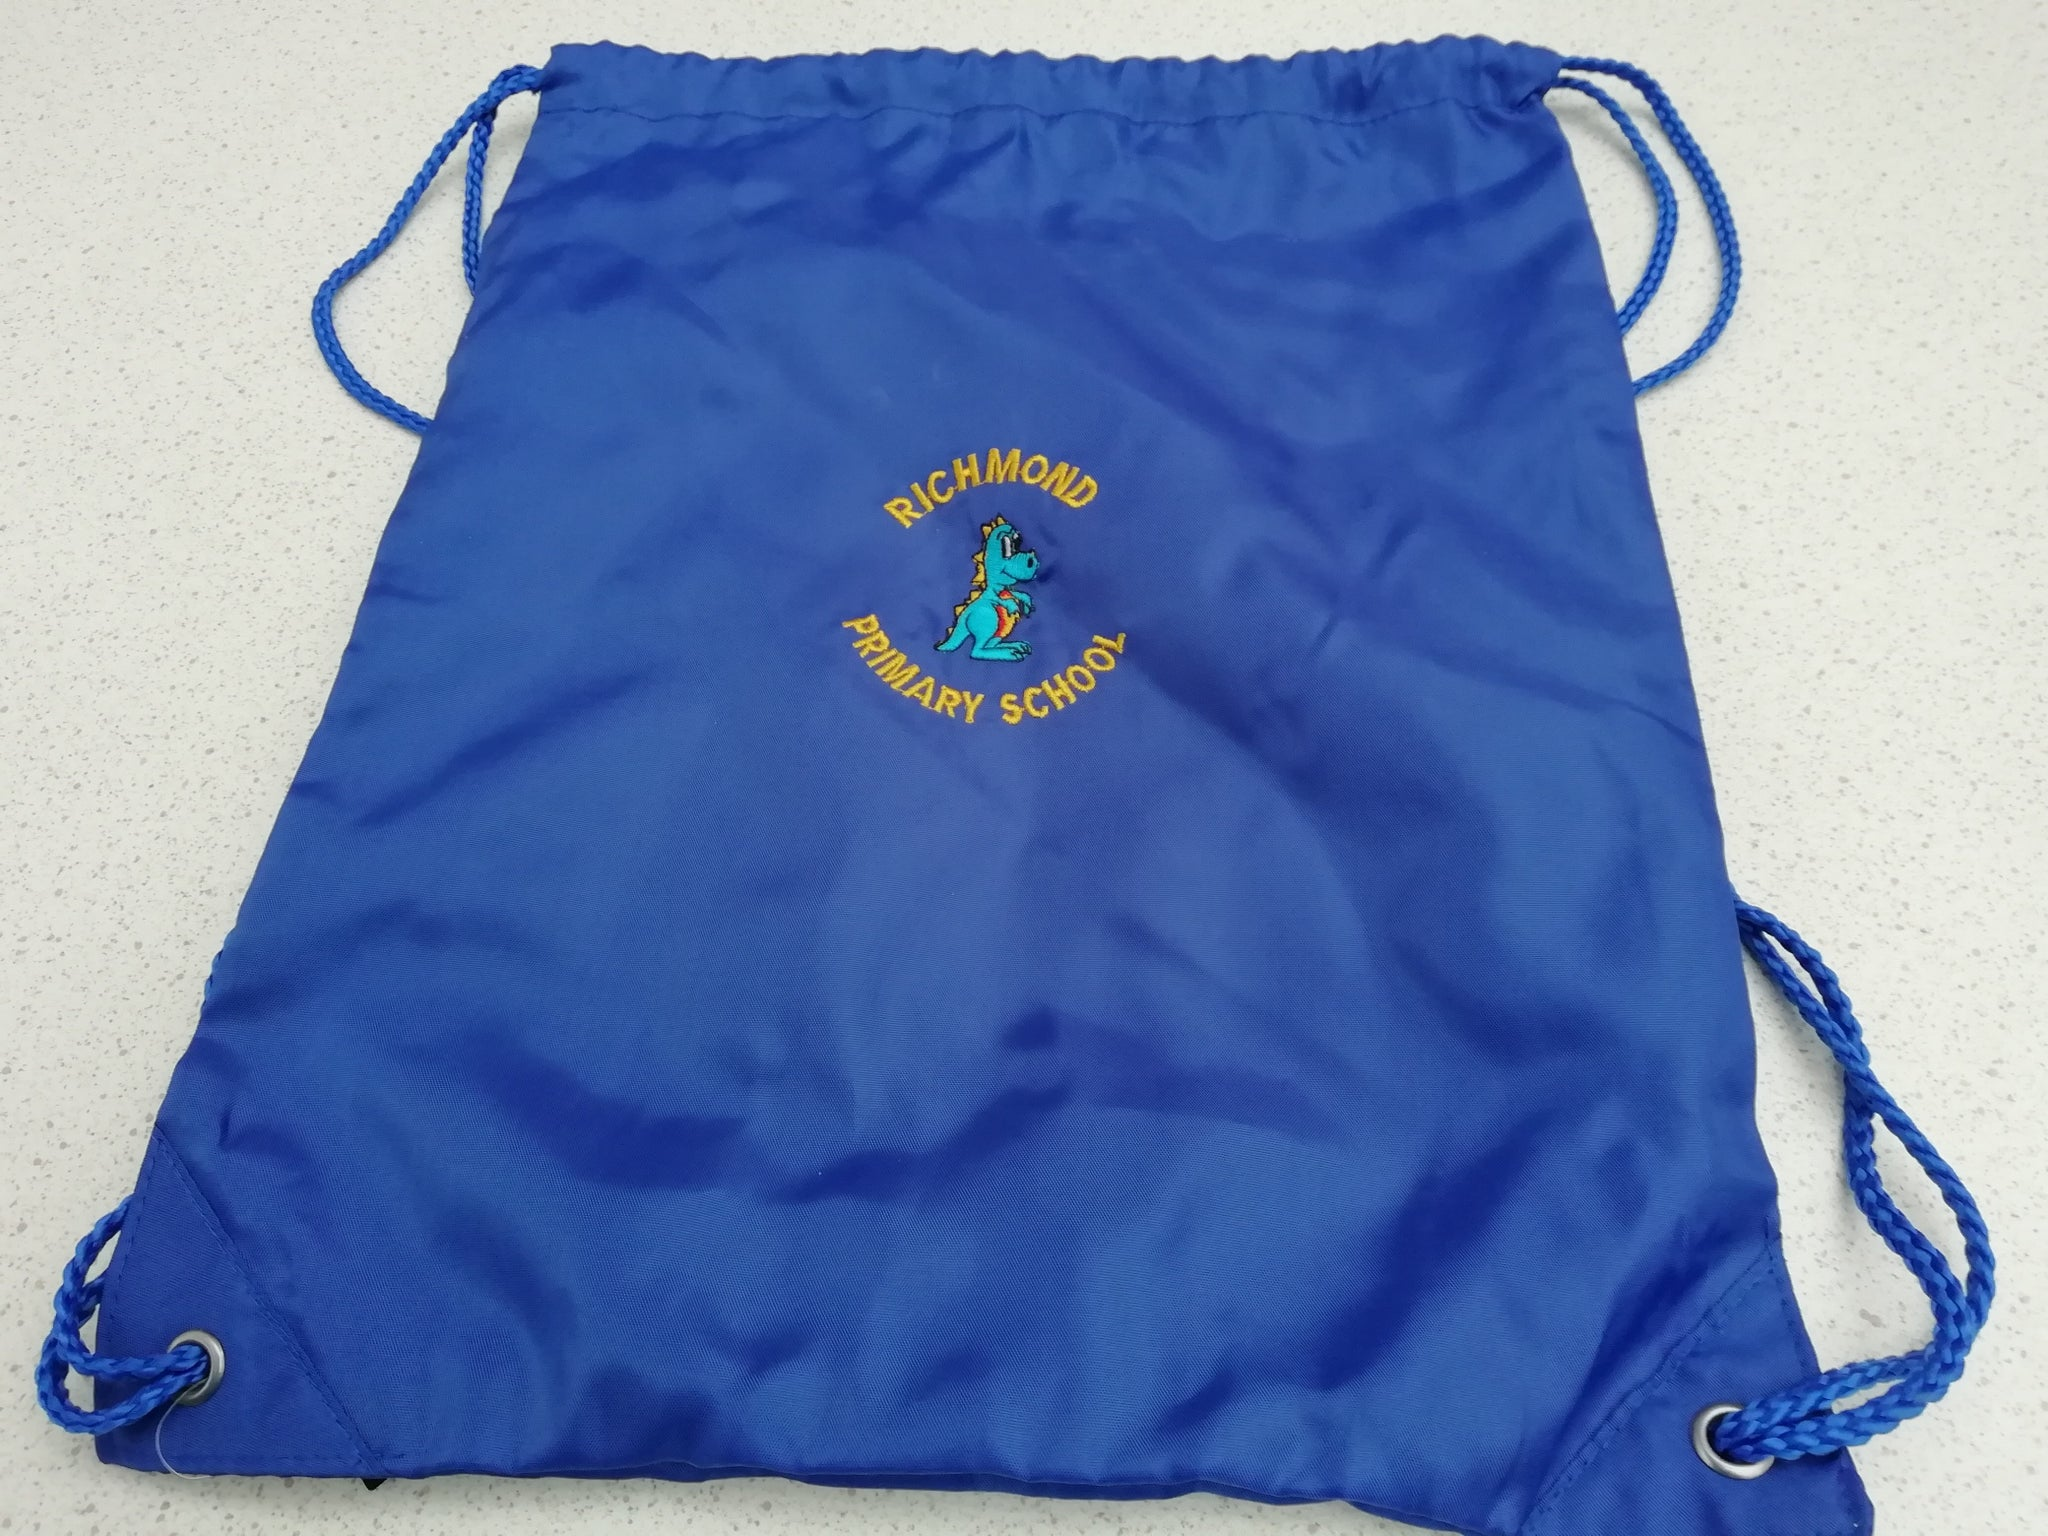 Richmond Gym Bag - Swifts Uniforms